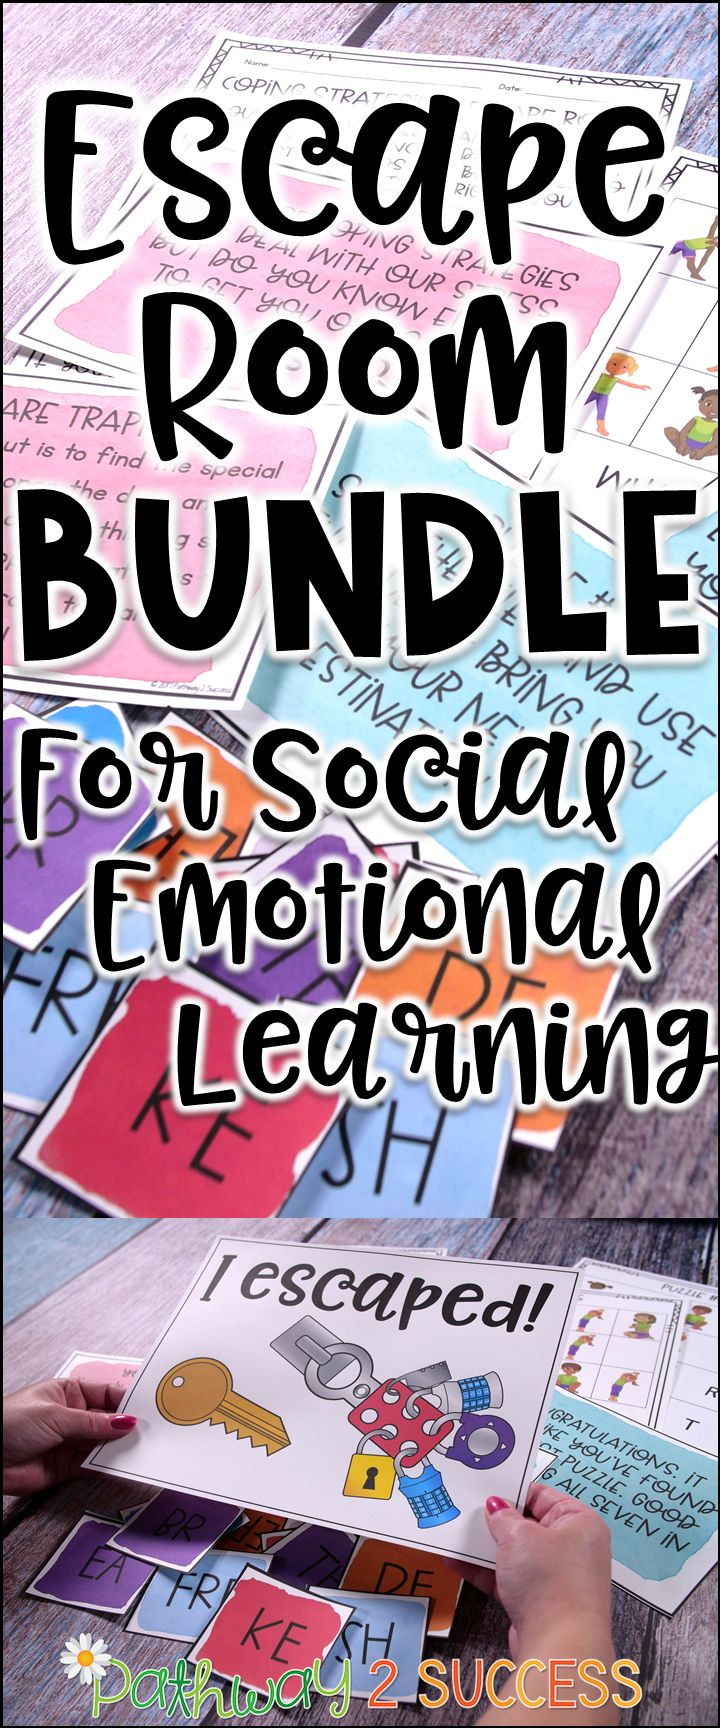 Use these escape room activities to teach conflict resolution, growth mindset, managing emotions, executive functioning skills, and coping strategies! Perfect for advisory groups, small counseling groups, resource rooms, or a full class!